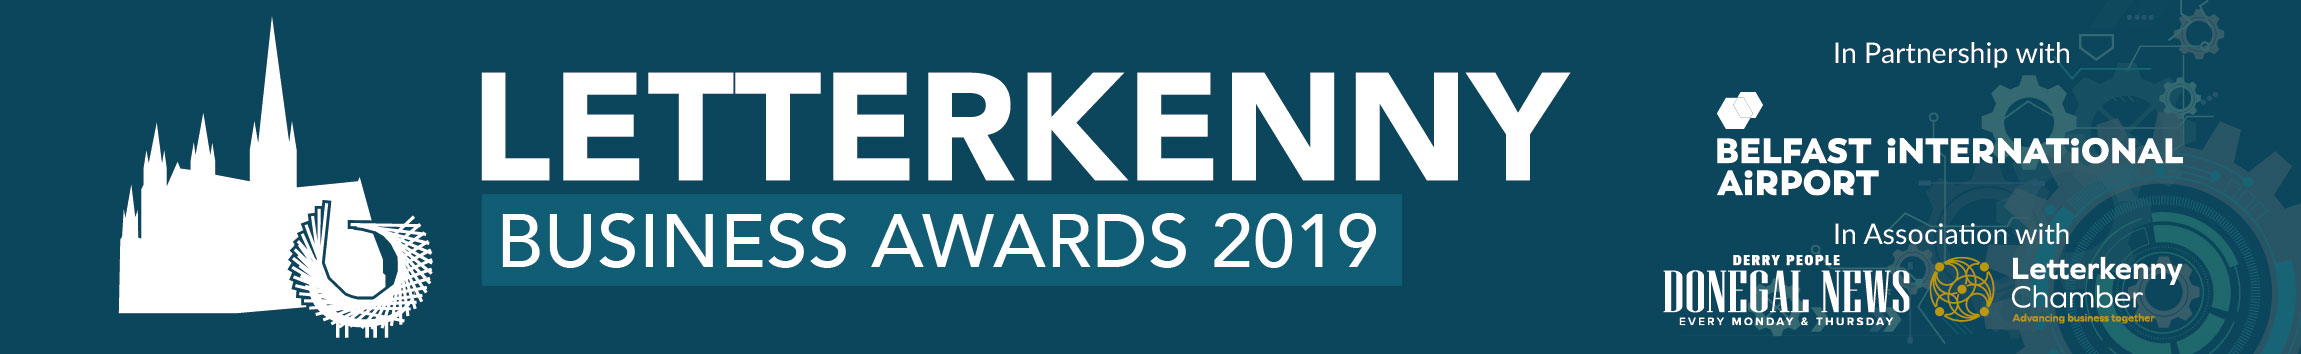 Letterkenny Business Awards Header